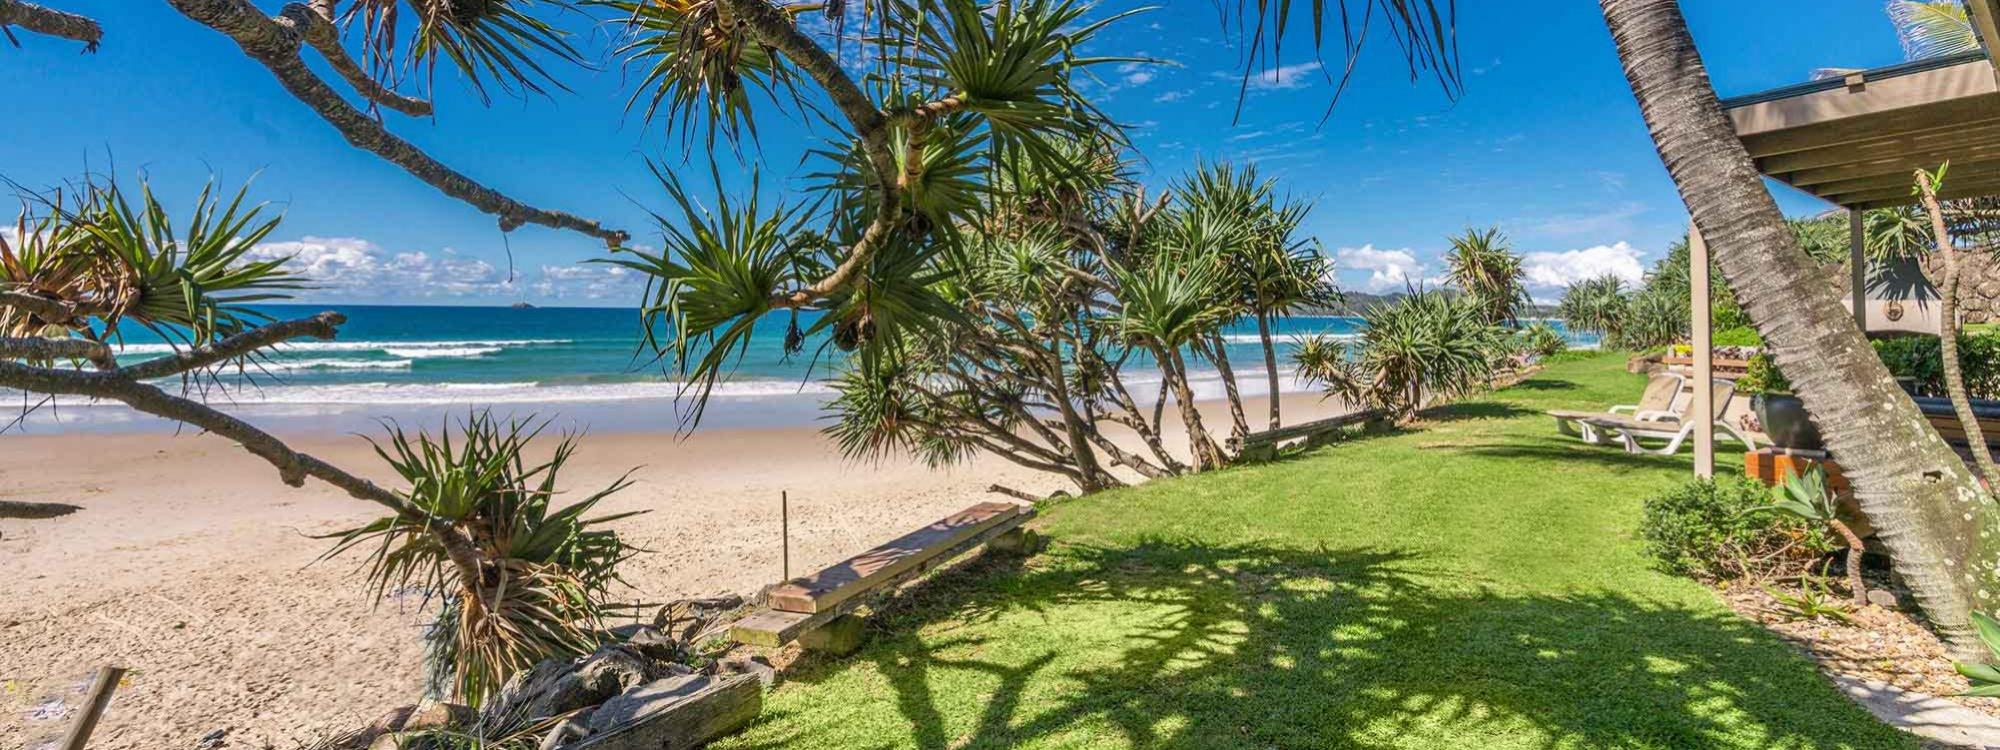 Moonstruck - Byron Bay - Front Lawn and Beach